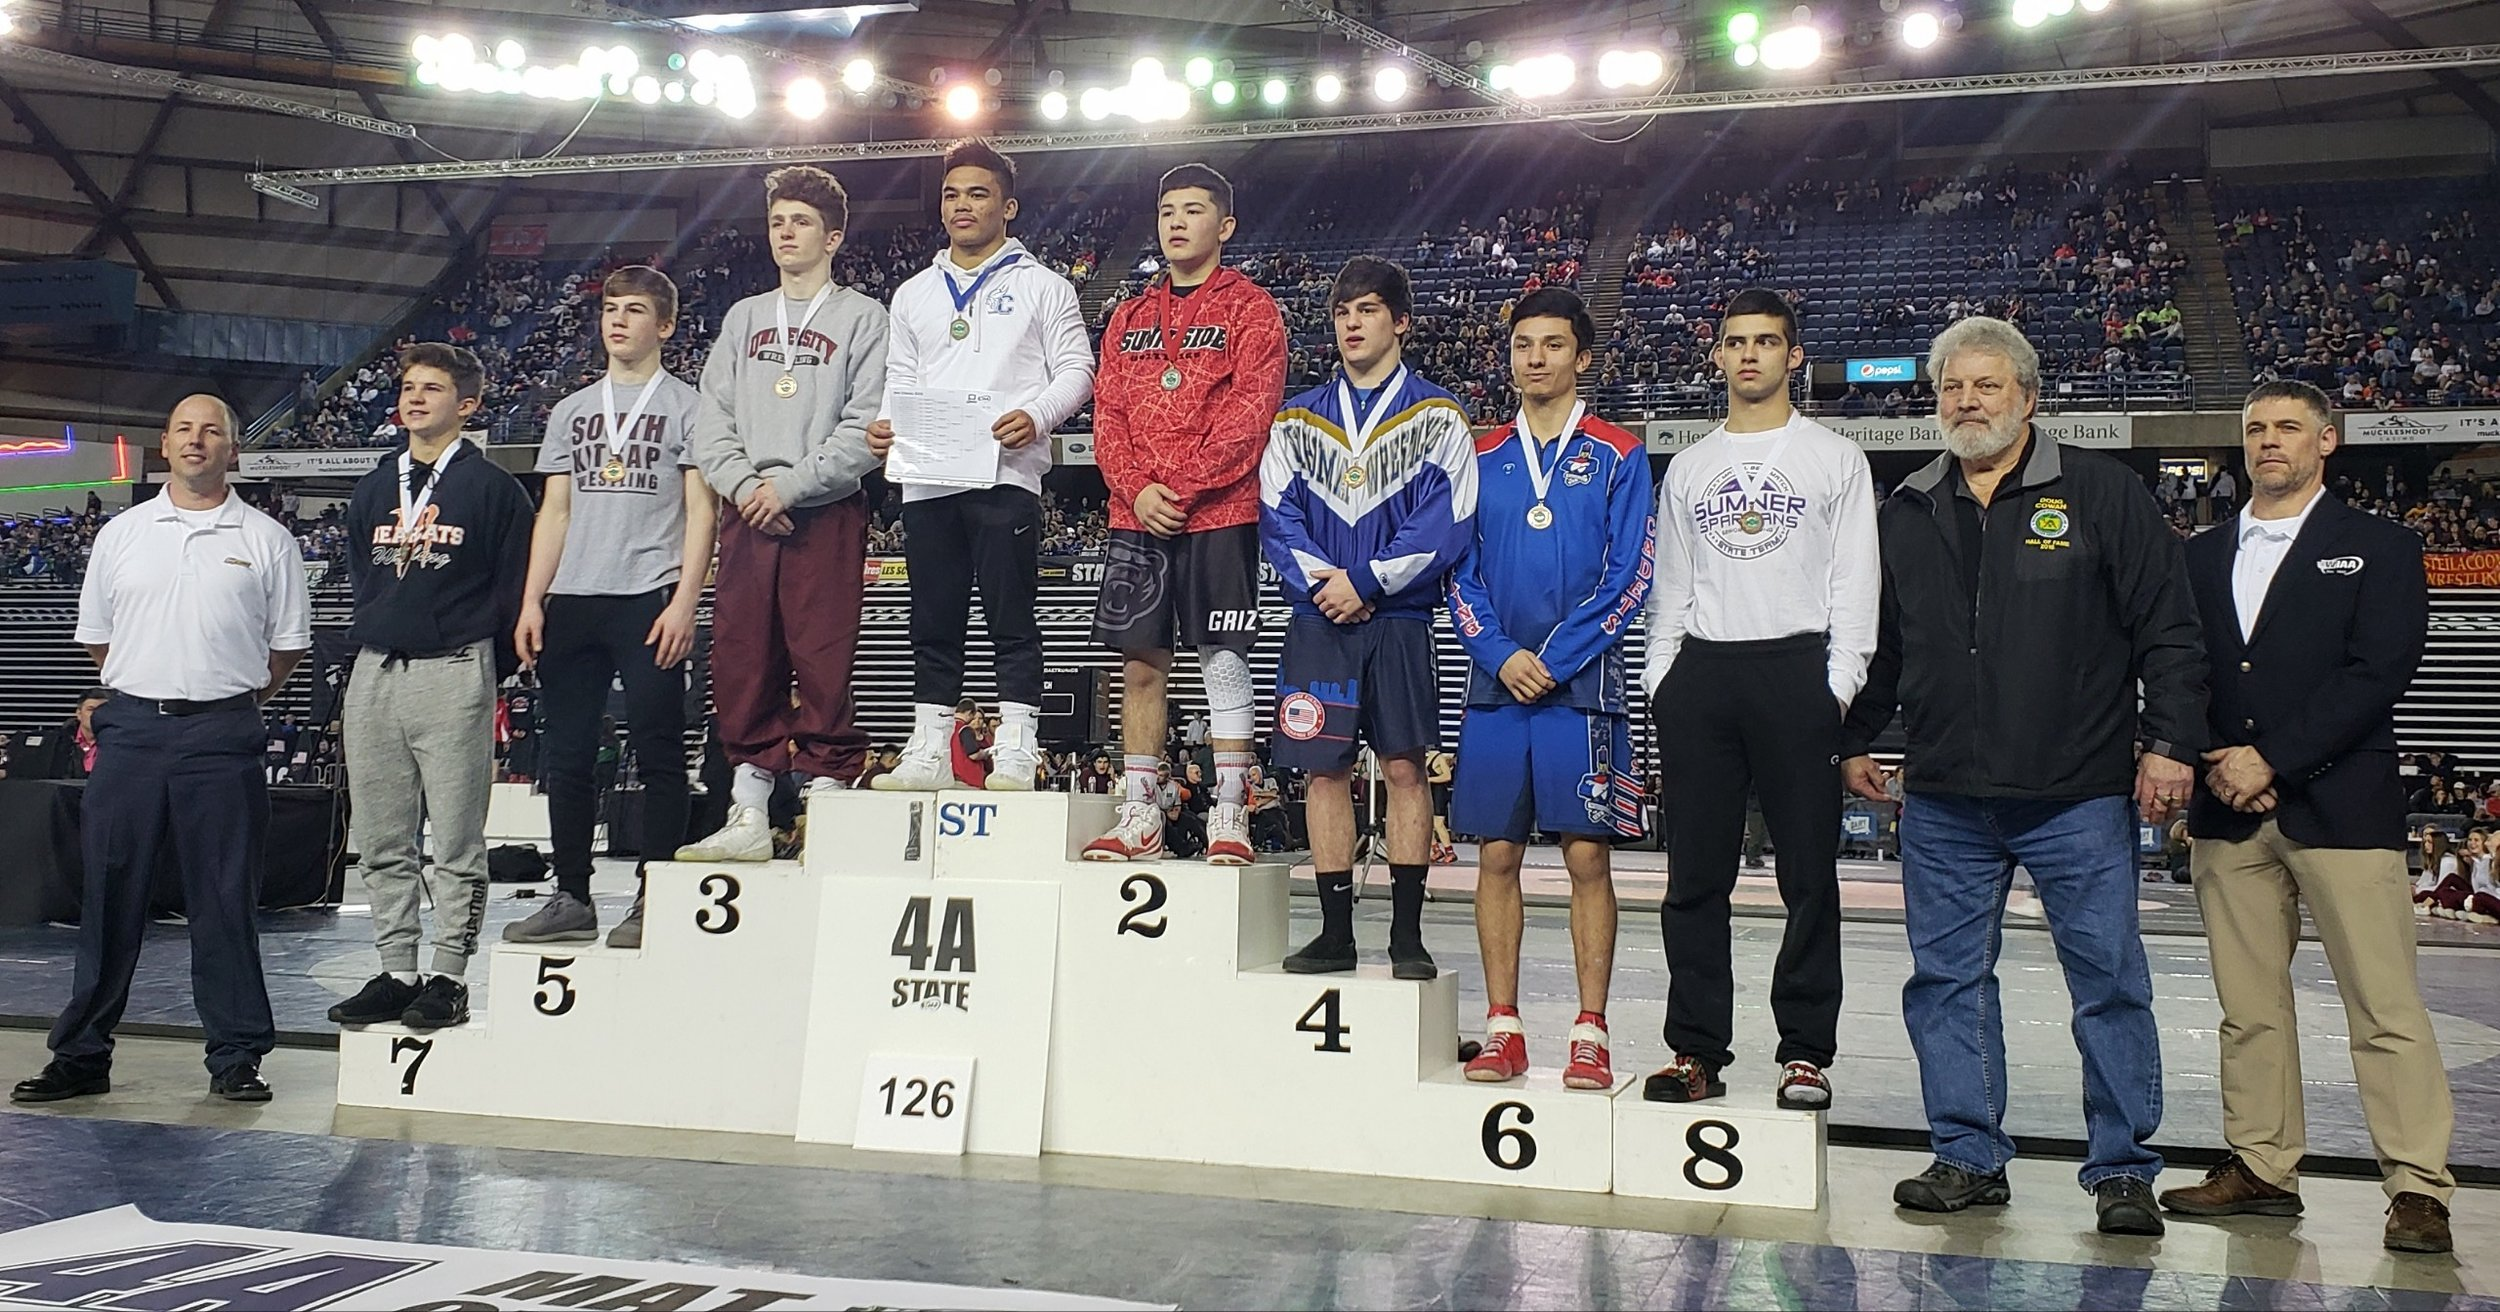 Austin Michalski - 5th Place